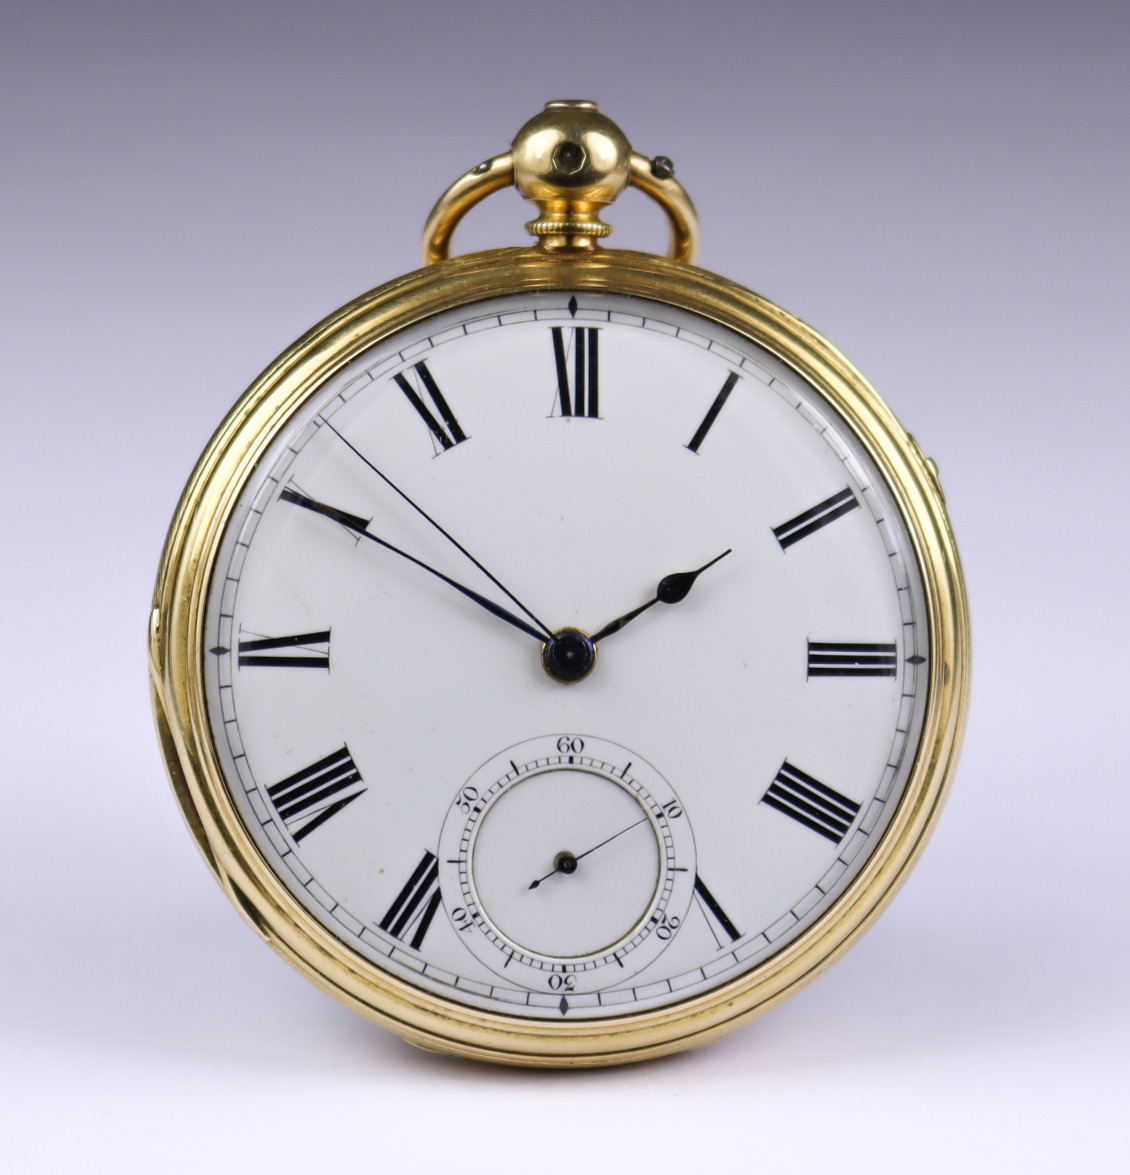 An 18ct Gold Cased Open Faced Fusee Lever Pocket Watch, by J. Newton, Leeds, 1860, 52mm diameter